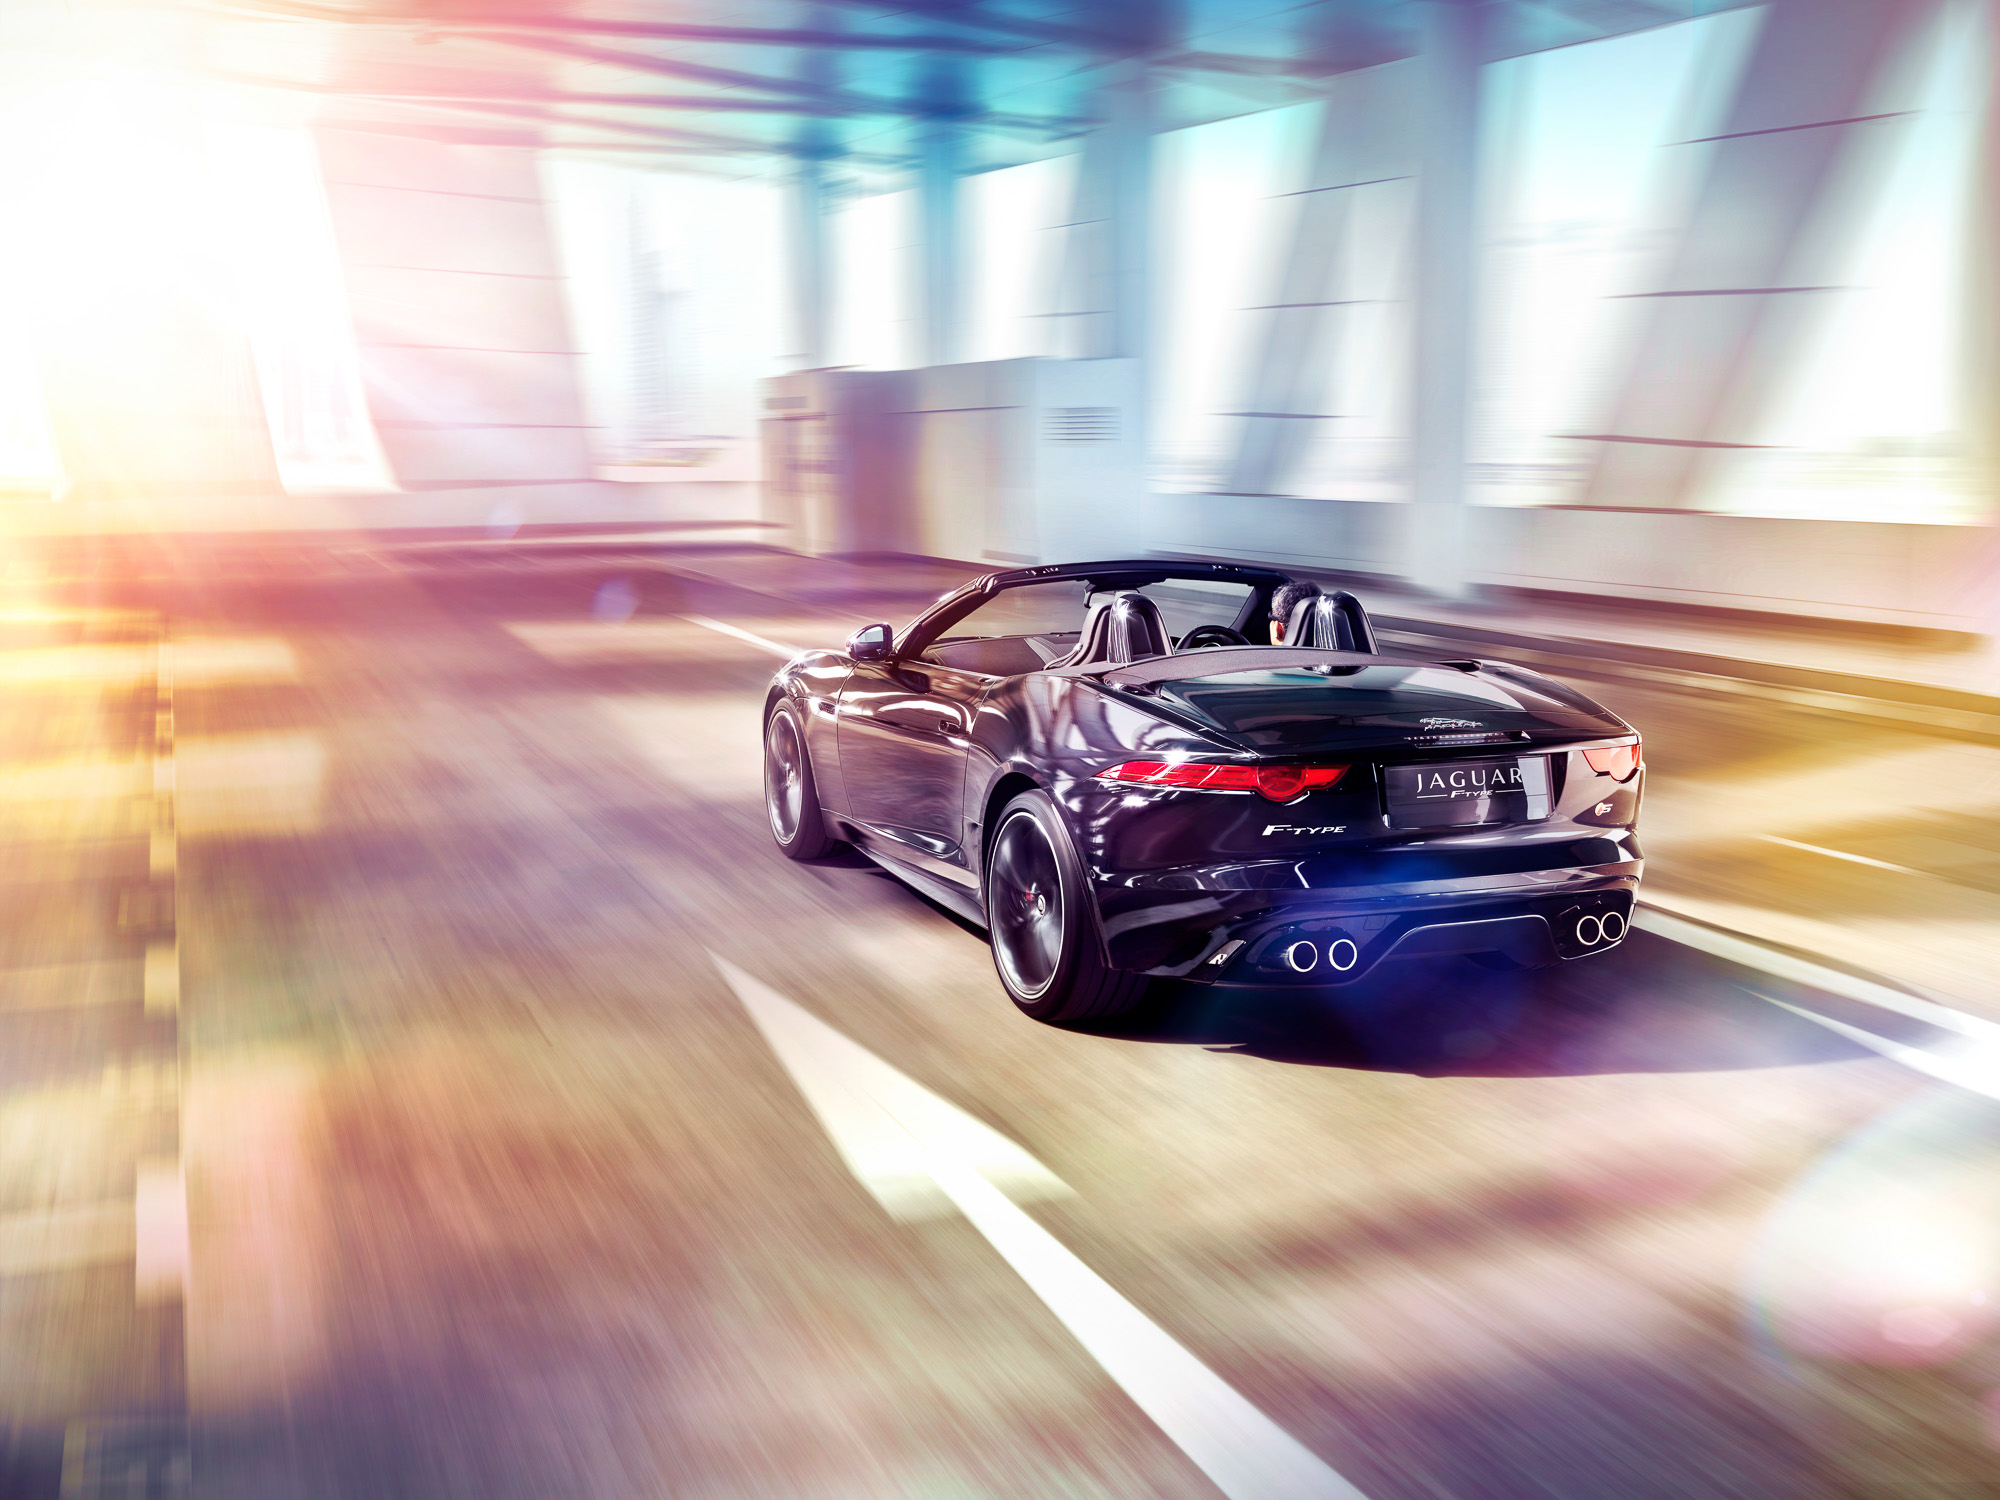 migs-foto-cgi-hong-kong-car-automotive-photography-photographer-Prestige-Jag-FType-Rear3q-Motion-Colour-2K